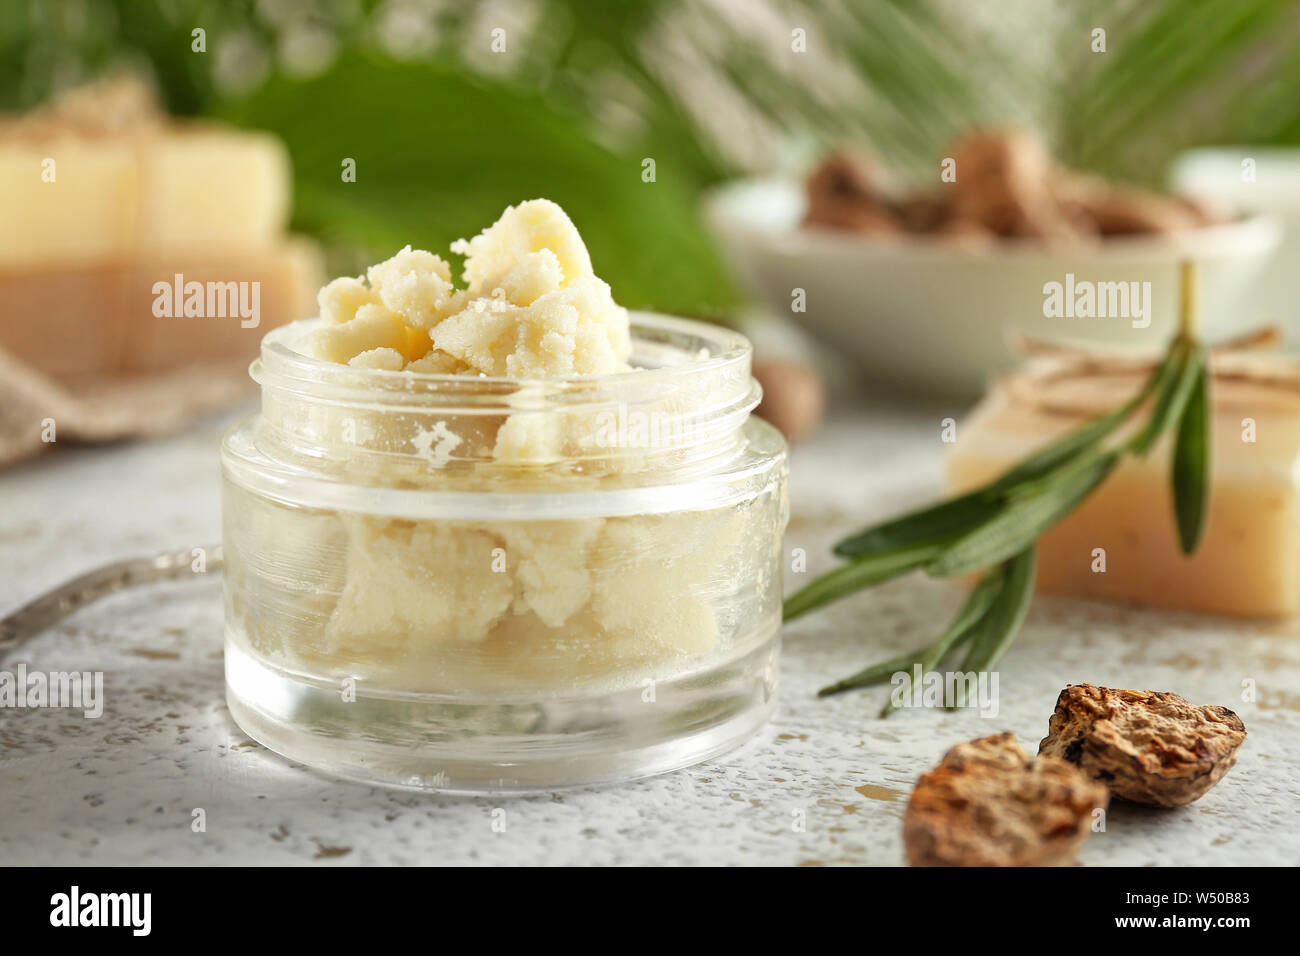 Jar with shea butter on table Stock Photo